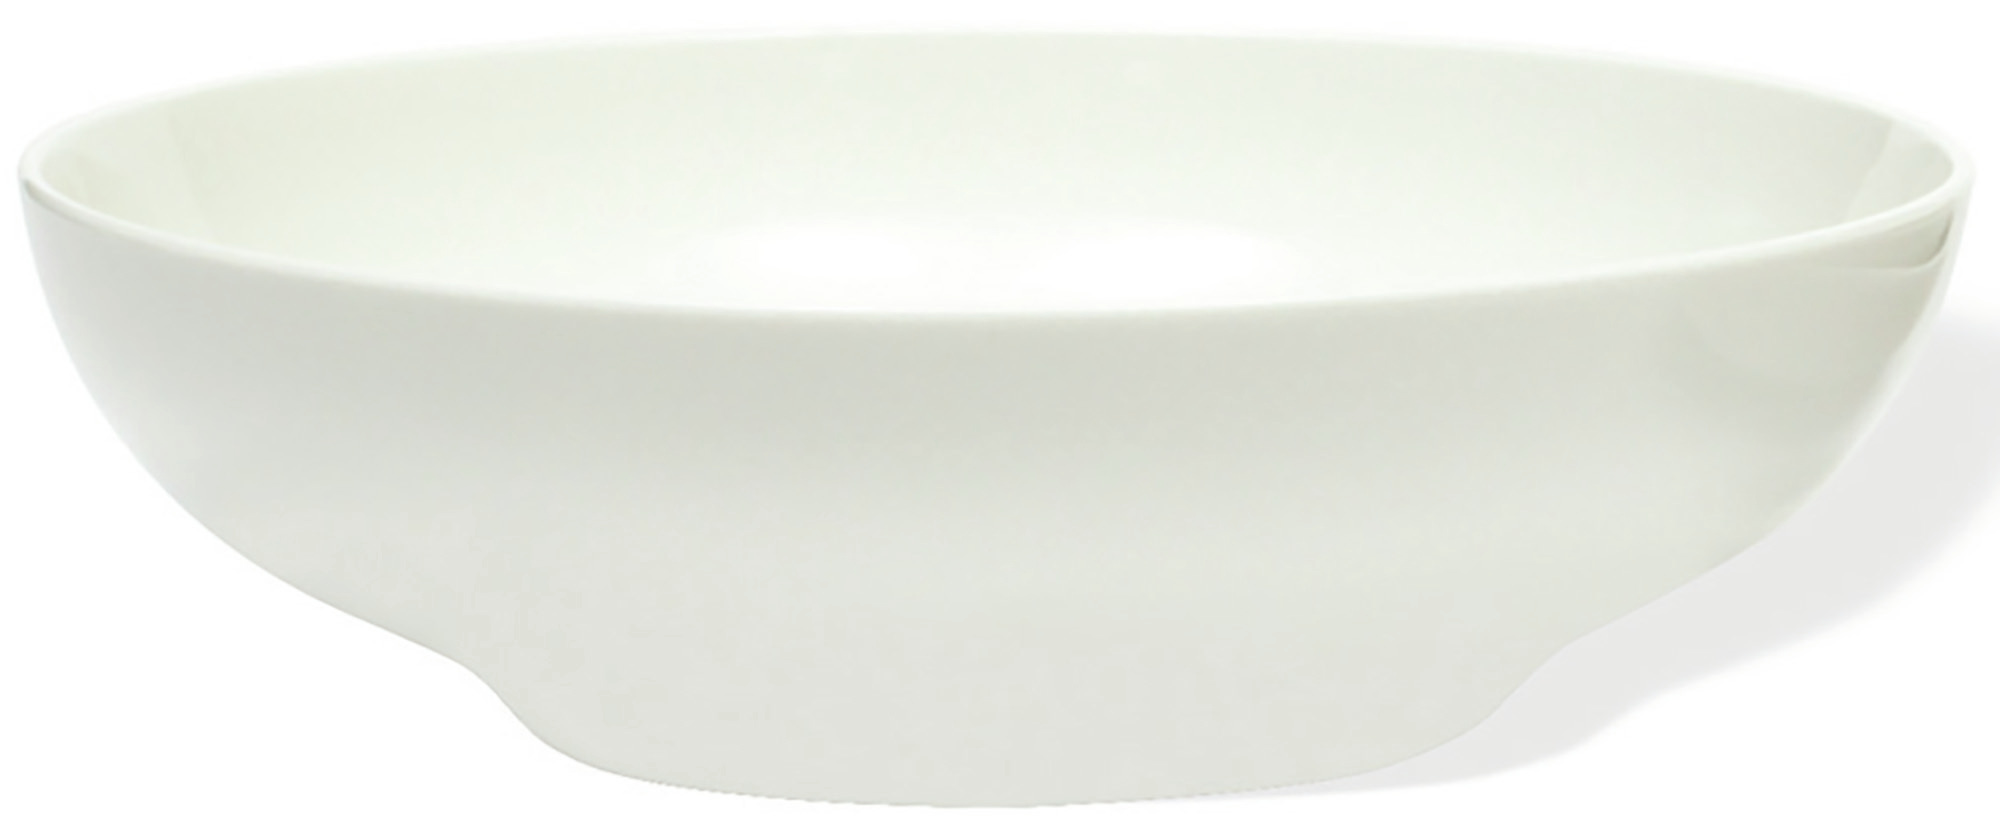 Maxwell & Williams White Basics Madison 26Cm Pasta Serving Bowl